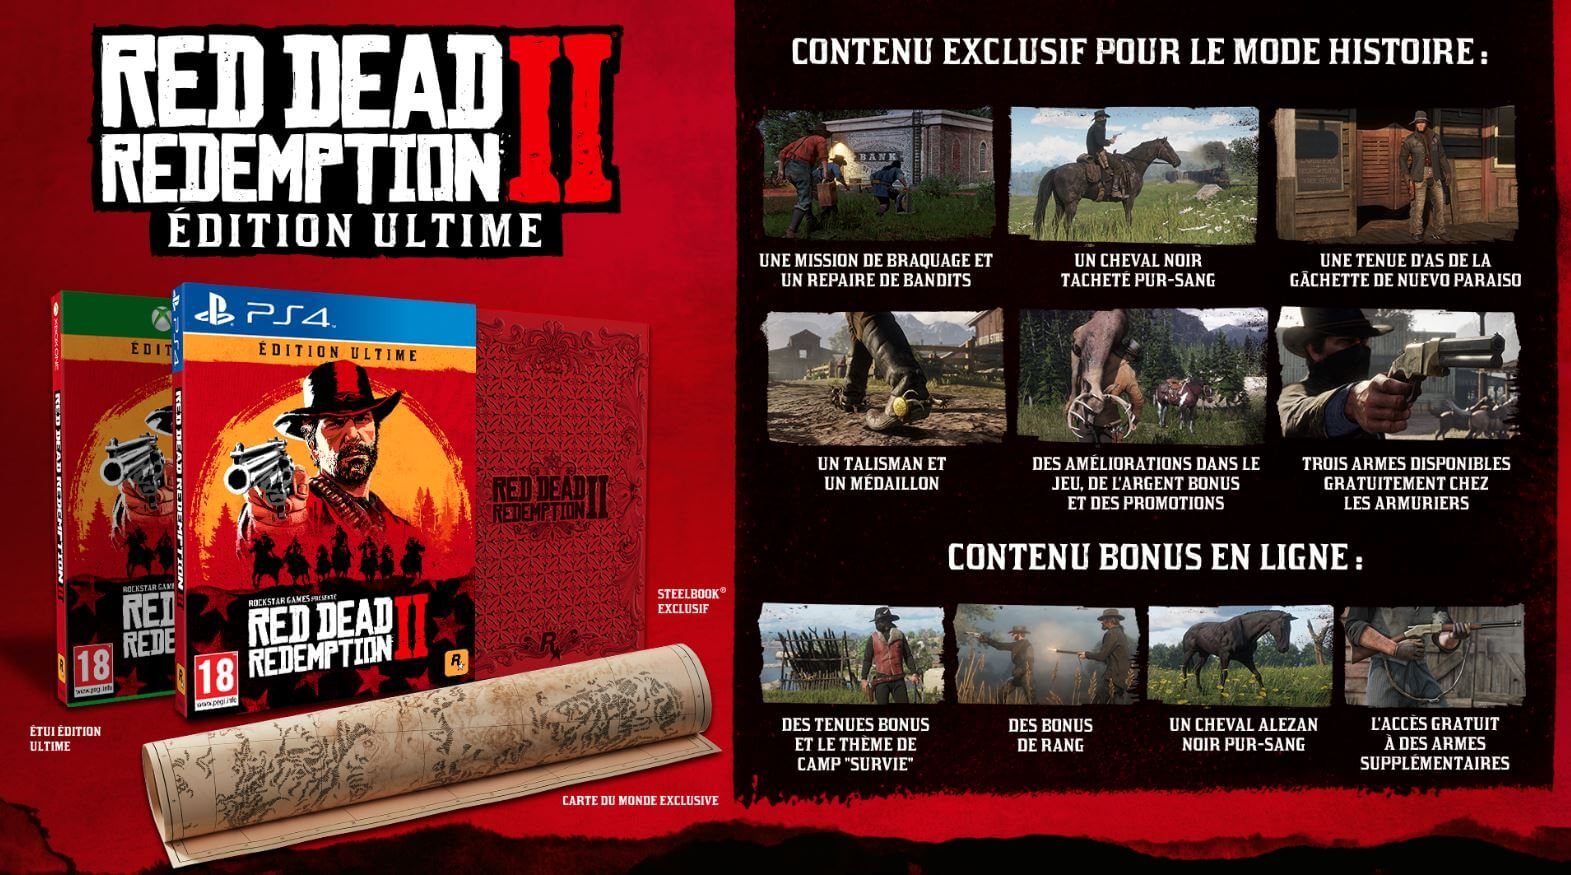 Black Friday 2018 : Red Dead Redemption 2, édition Ultime PS4 à 84 €